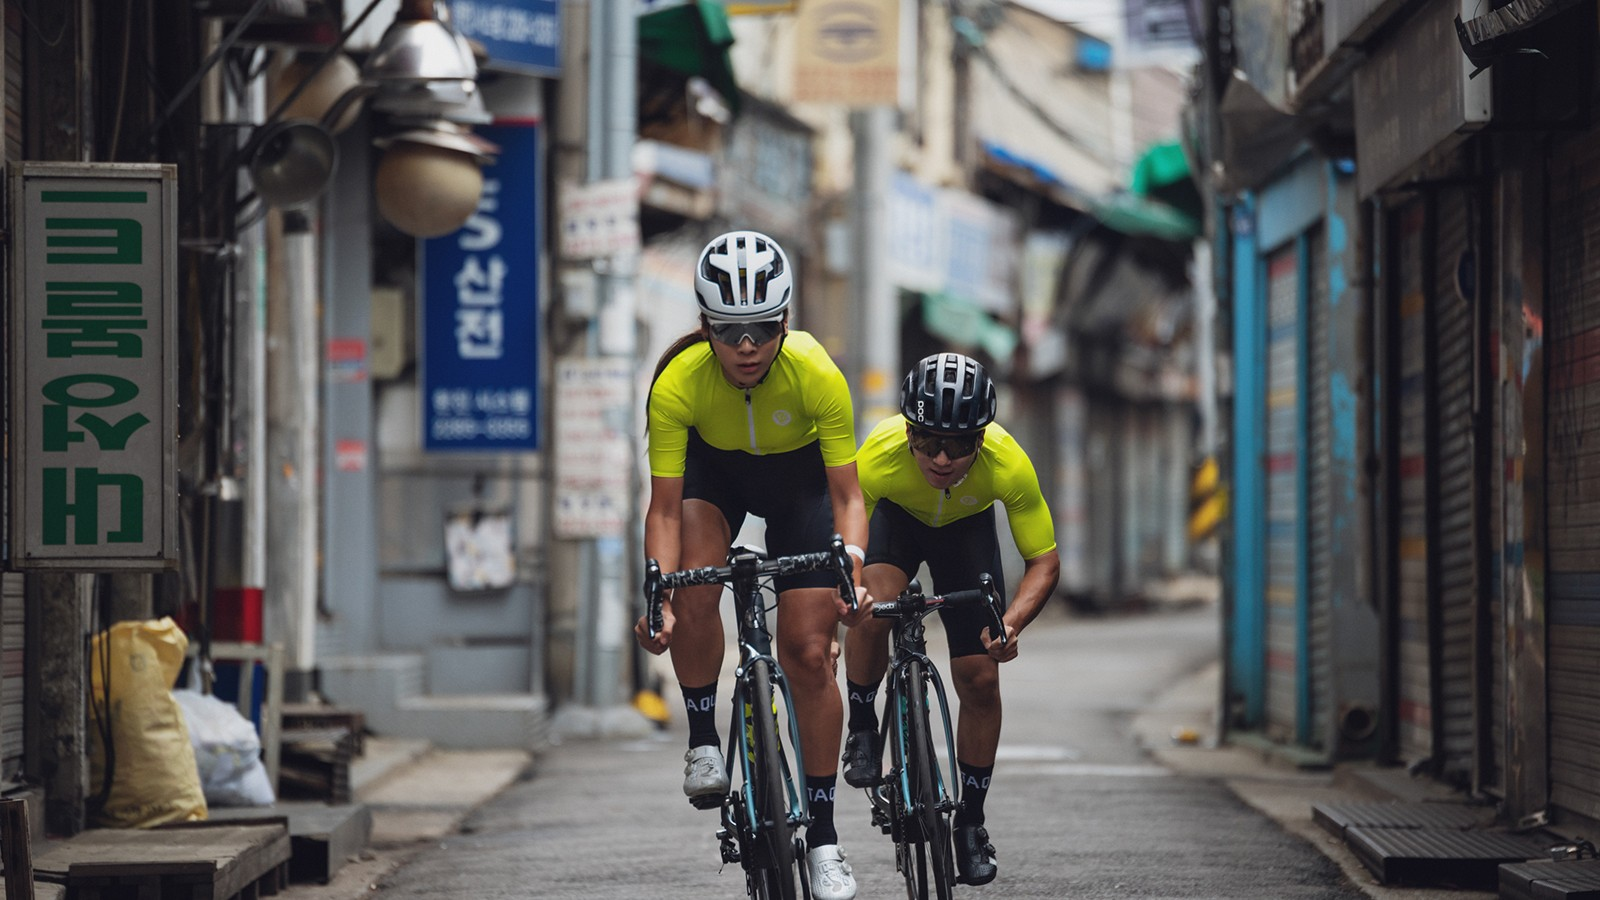 The bright Race jersey in Neon